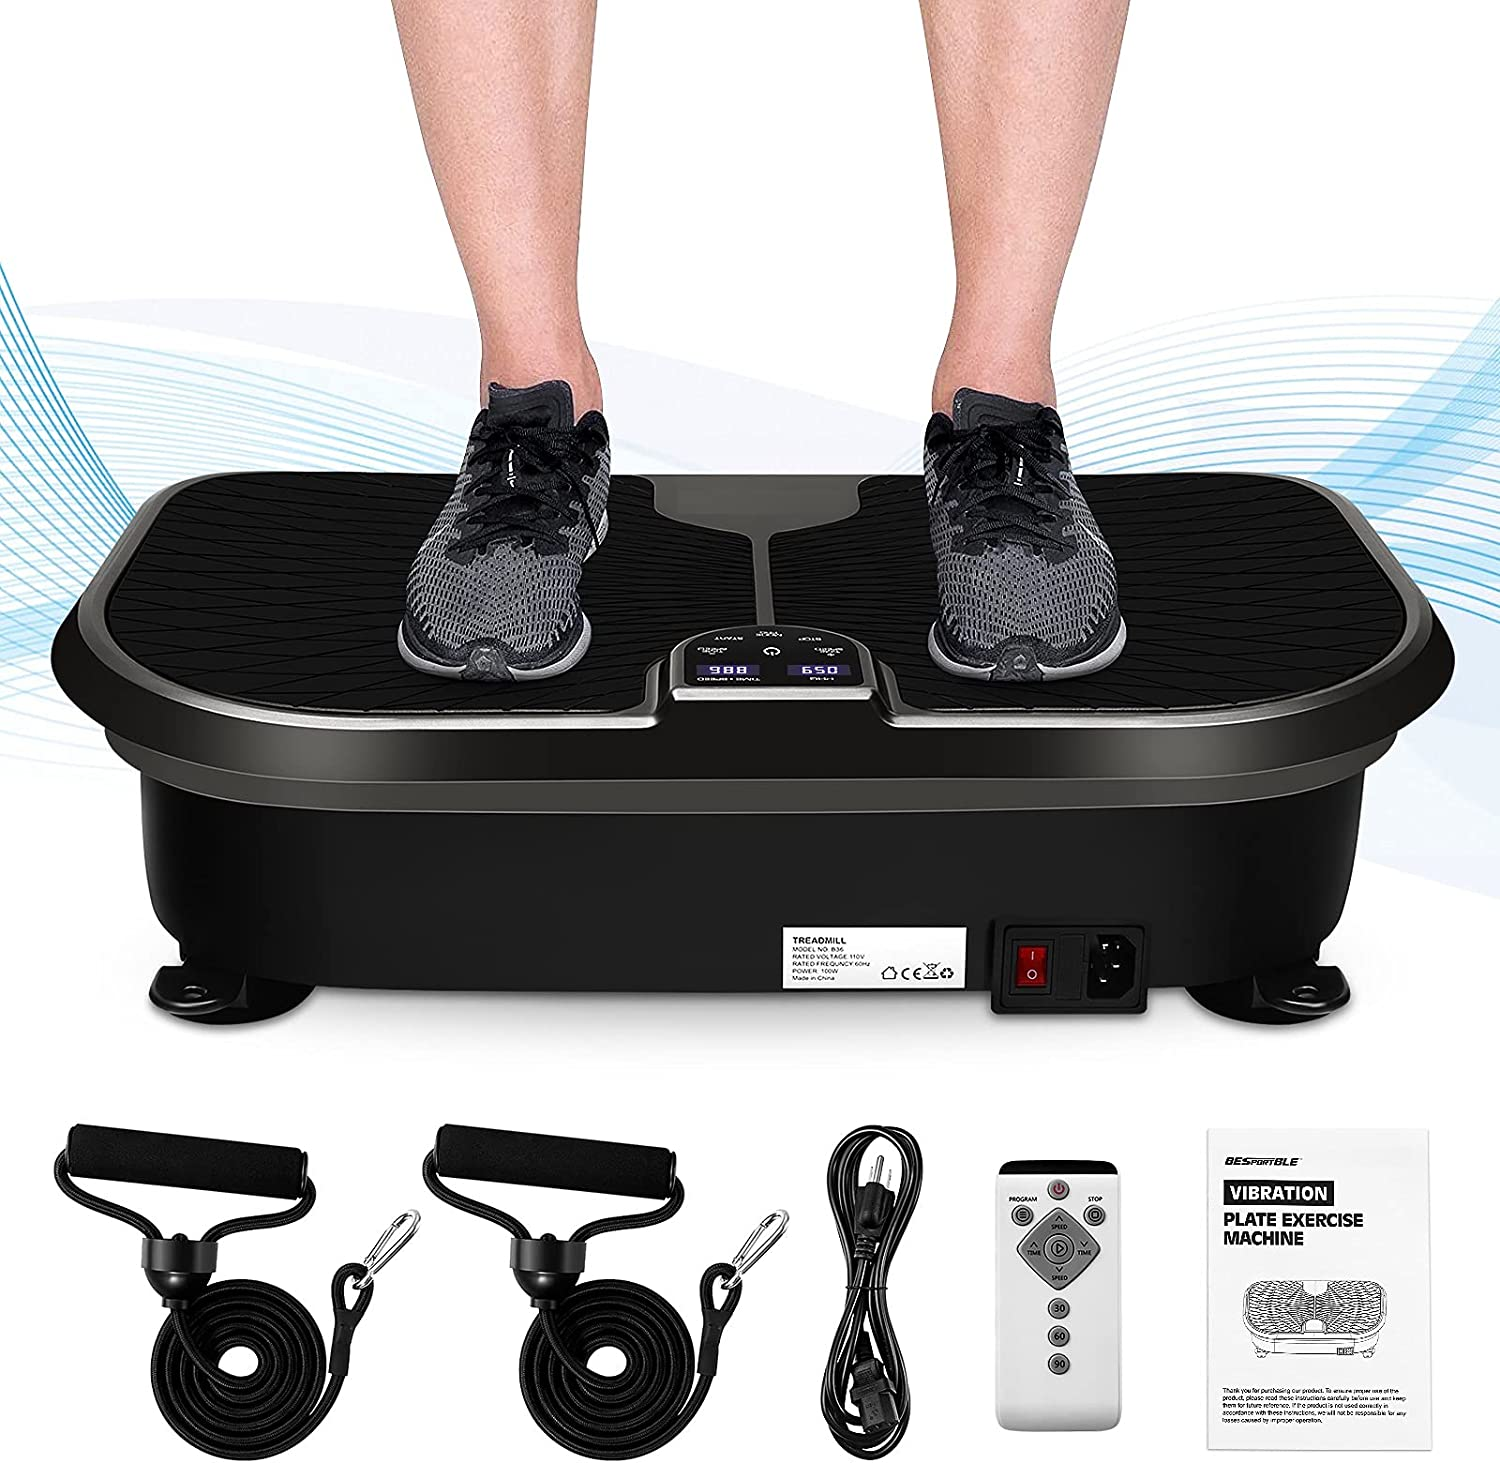 VOSAREA Fitness Vibration Plate Exercise Machine Weight New sales Large special price !! Loss for